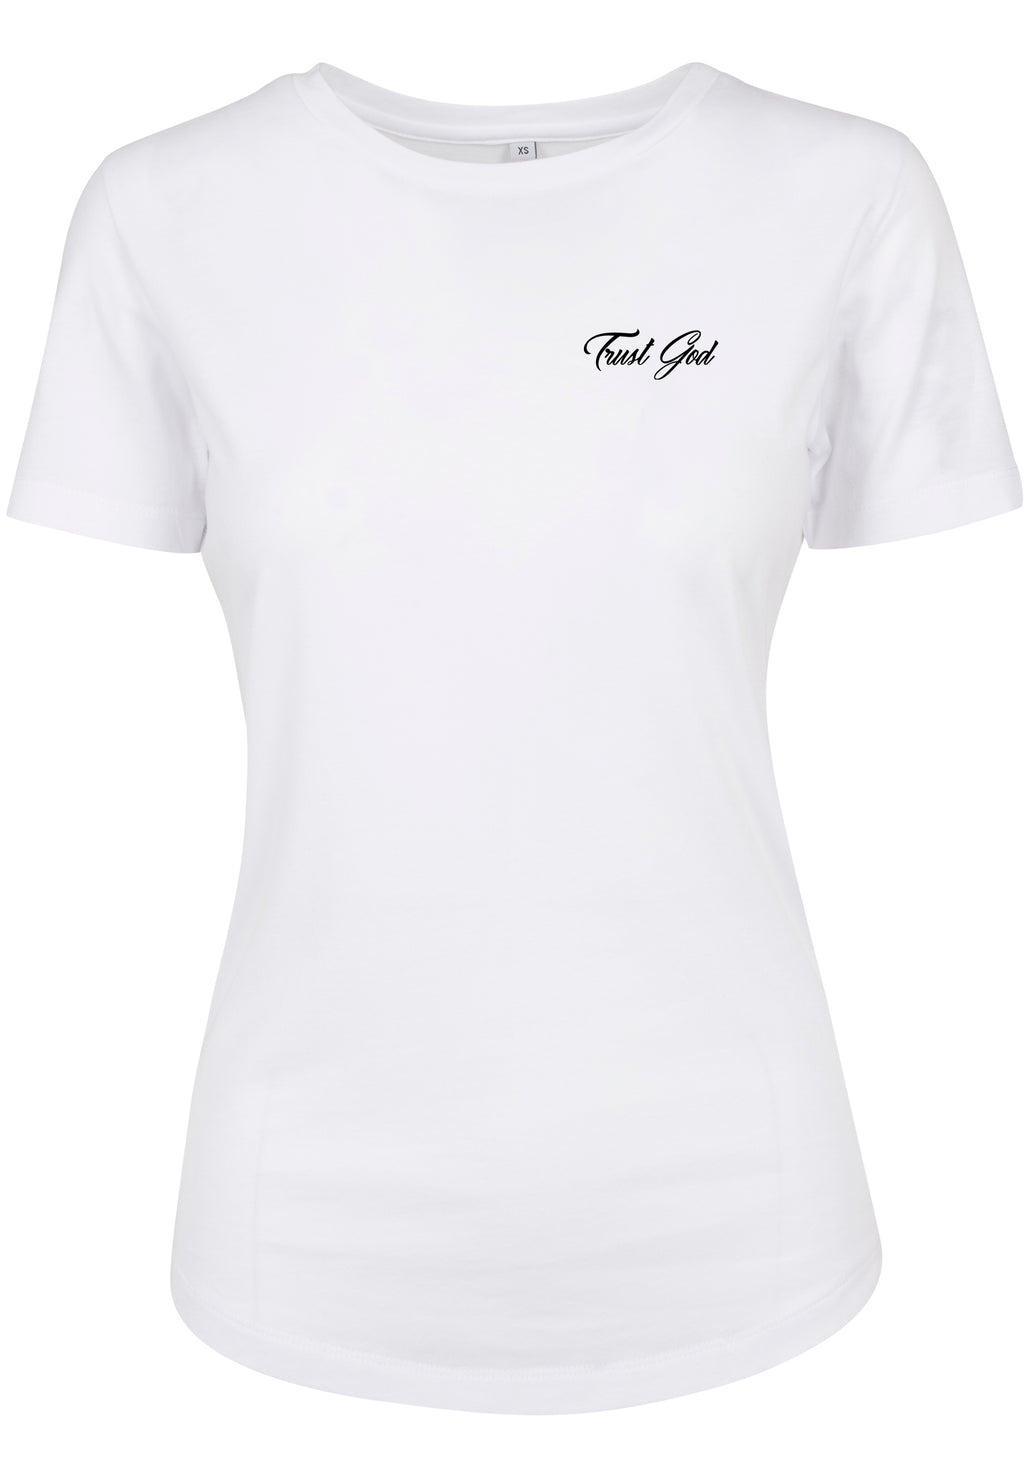 Womens TRUST GOD Cursive Fitted Tee (White)